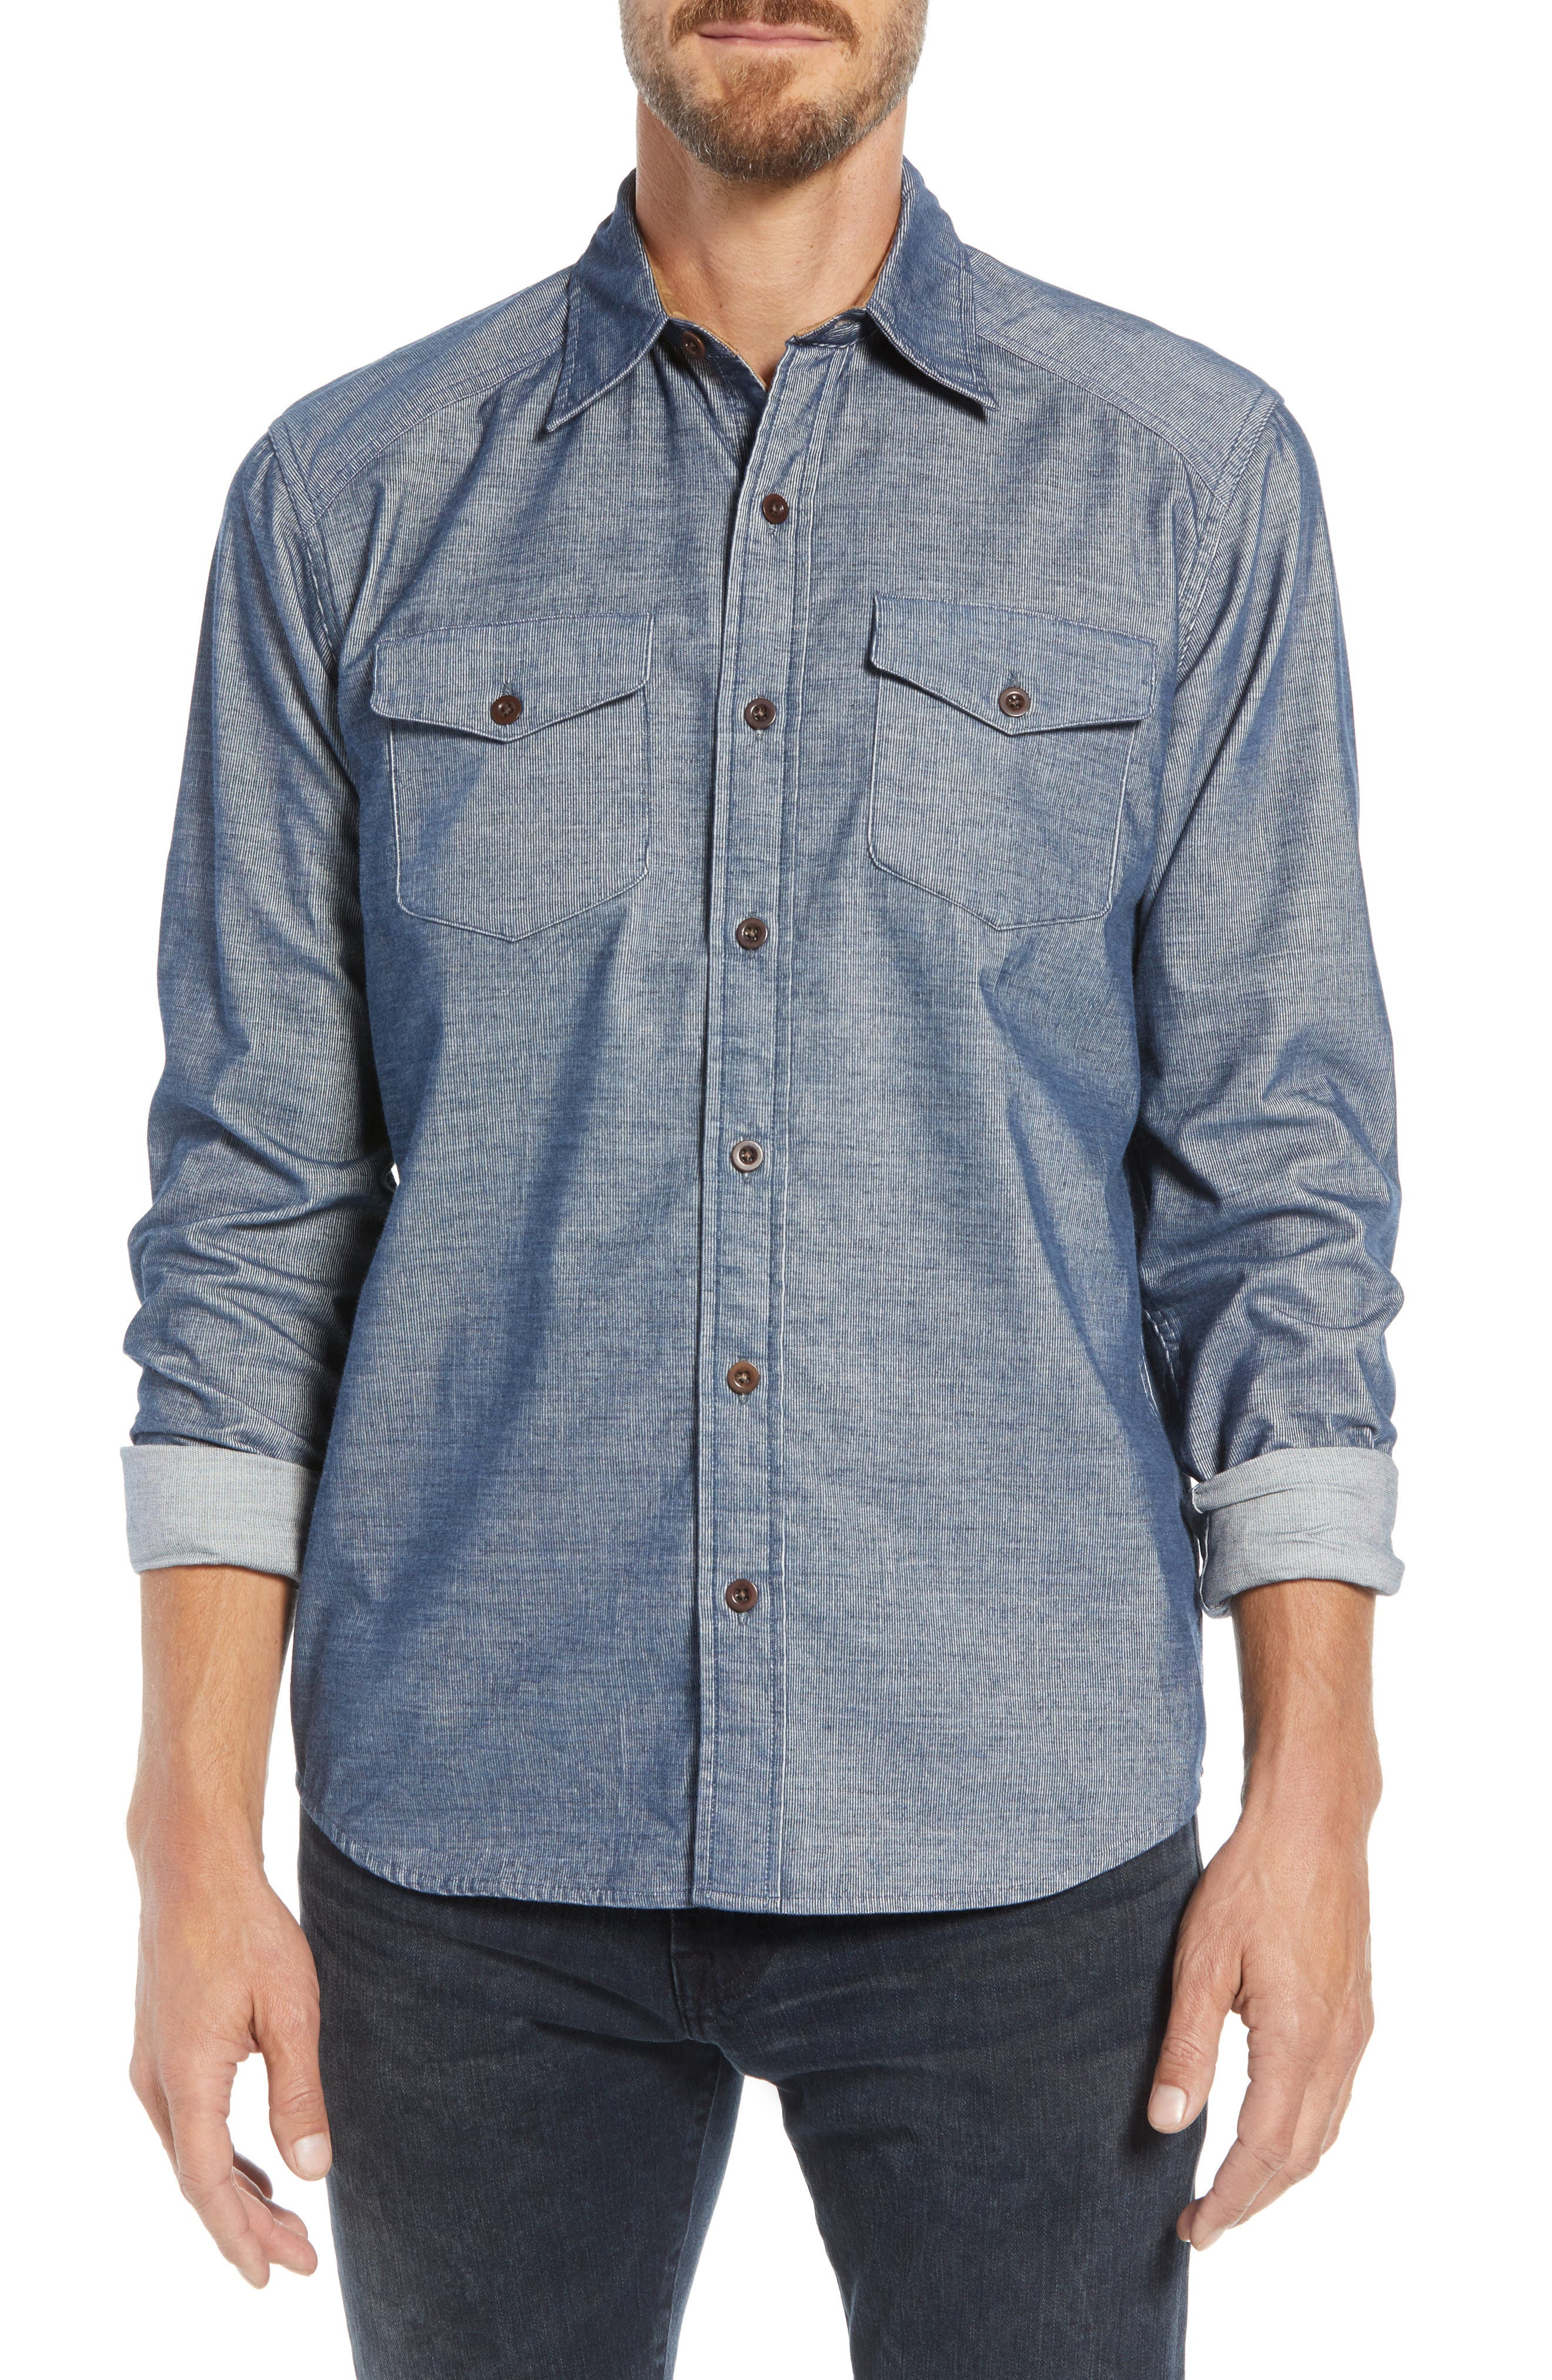 John Addison Engineer Shirt,                         Main,                         color, BLUE HEATHER